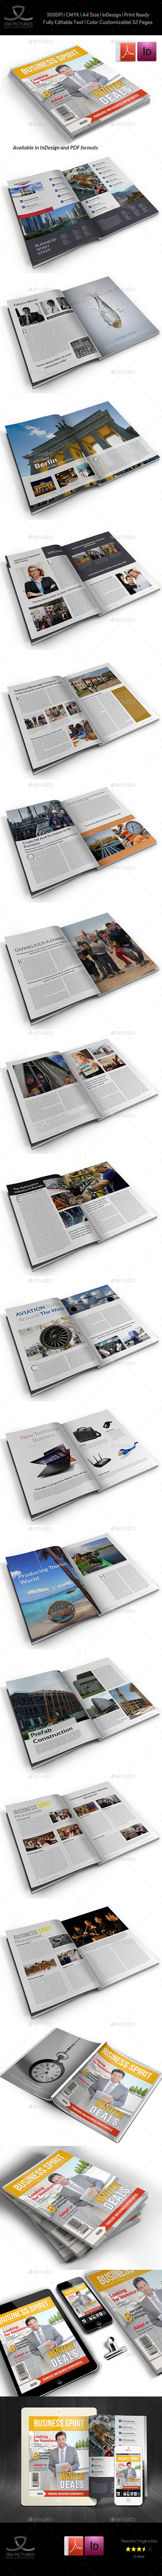 Business Spirit Newsletter Magazine - 32 Pages V.2 - Magazines Print Templates